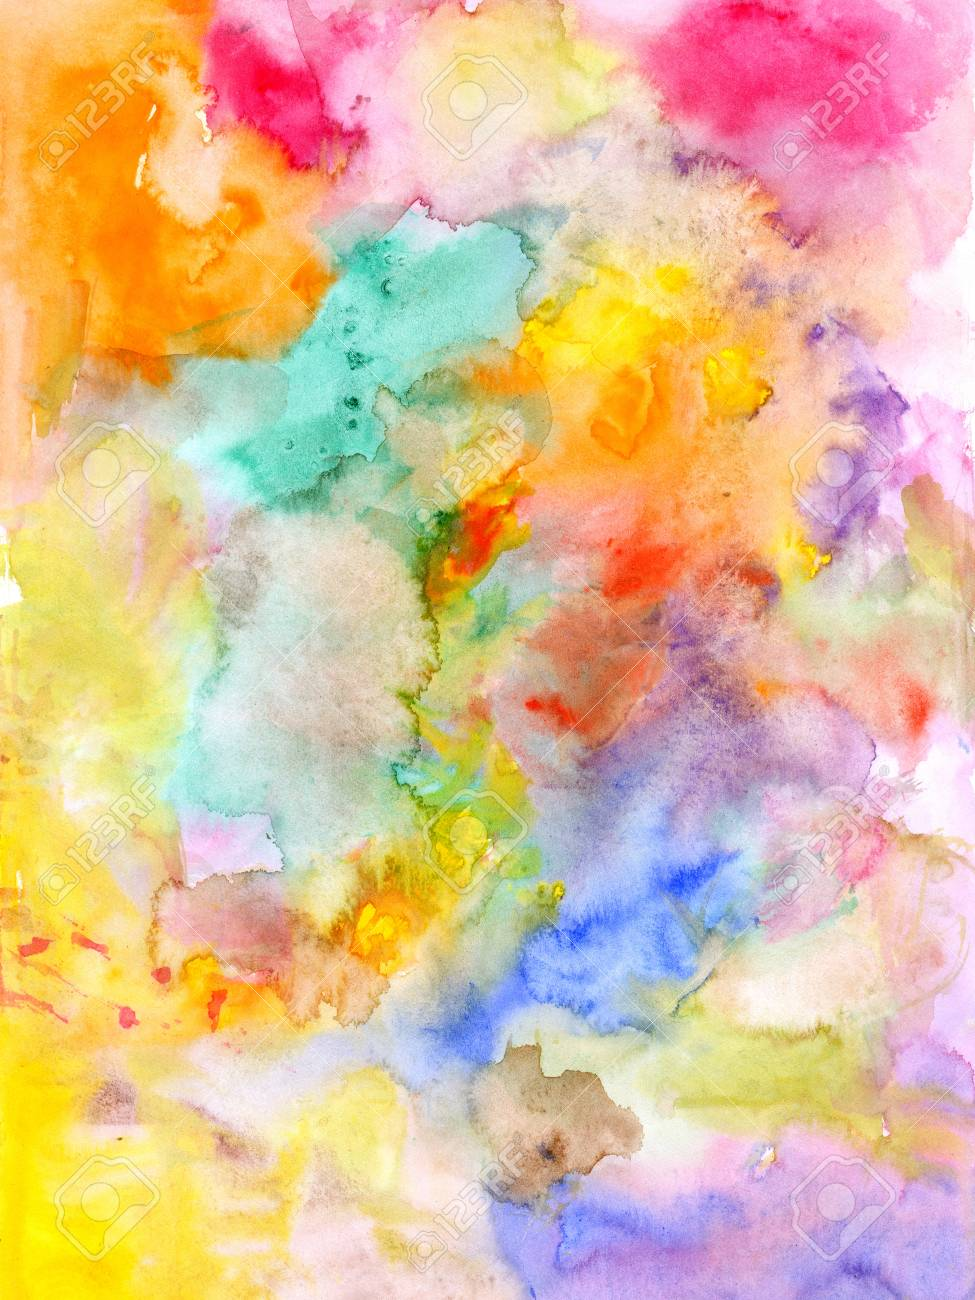 Abstract Watercolor Colorful Background   Hand Drawn Stock Photo 975x1300